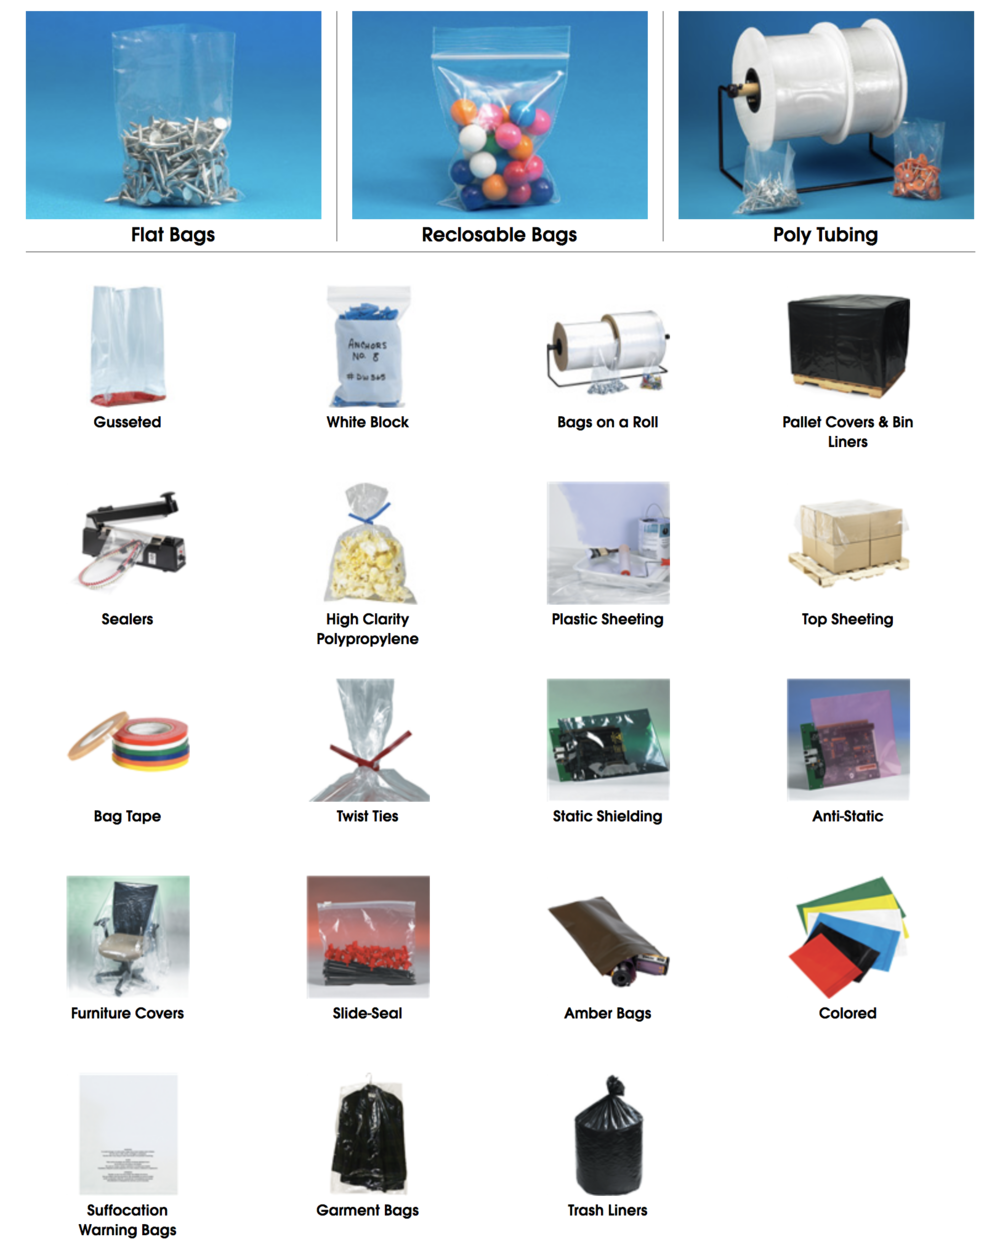 Plastic bags as roll film sheeting for covers parts trash equipment